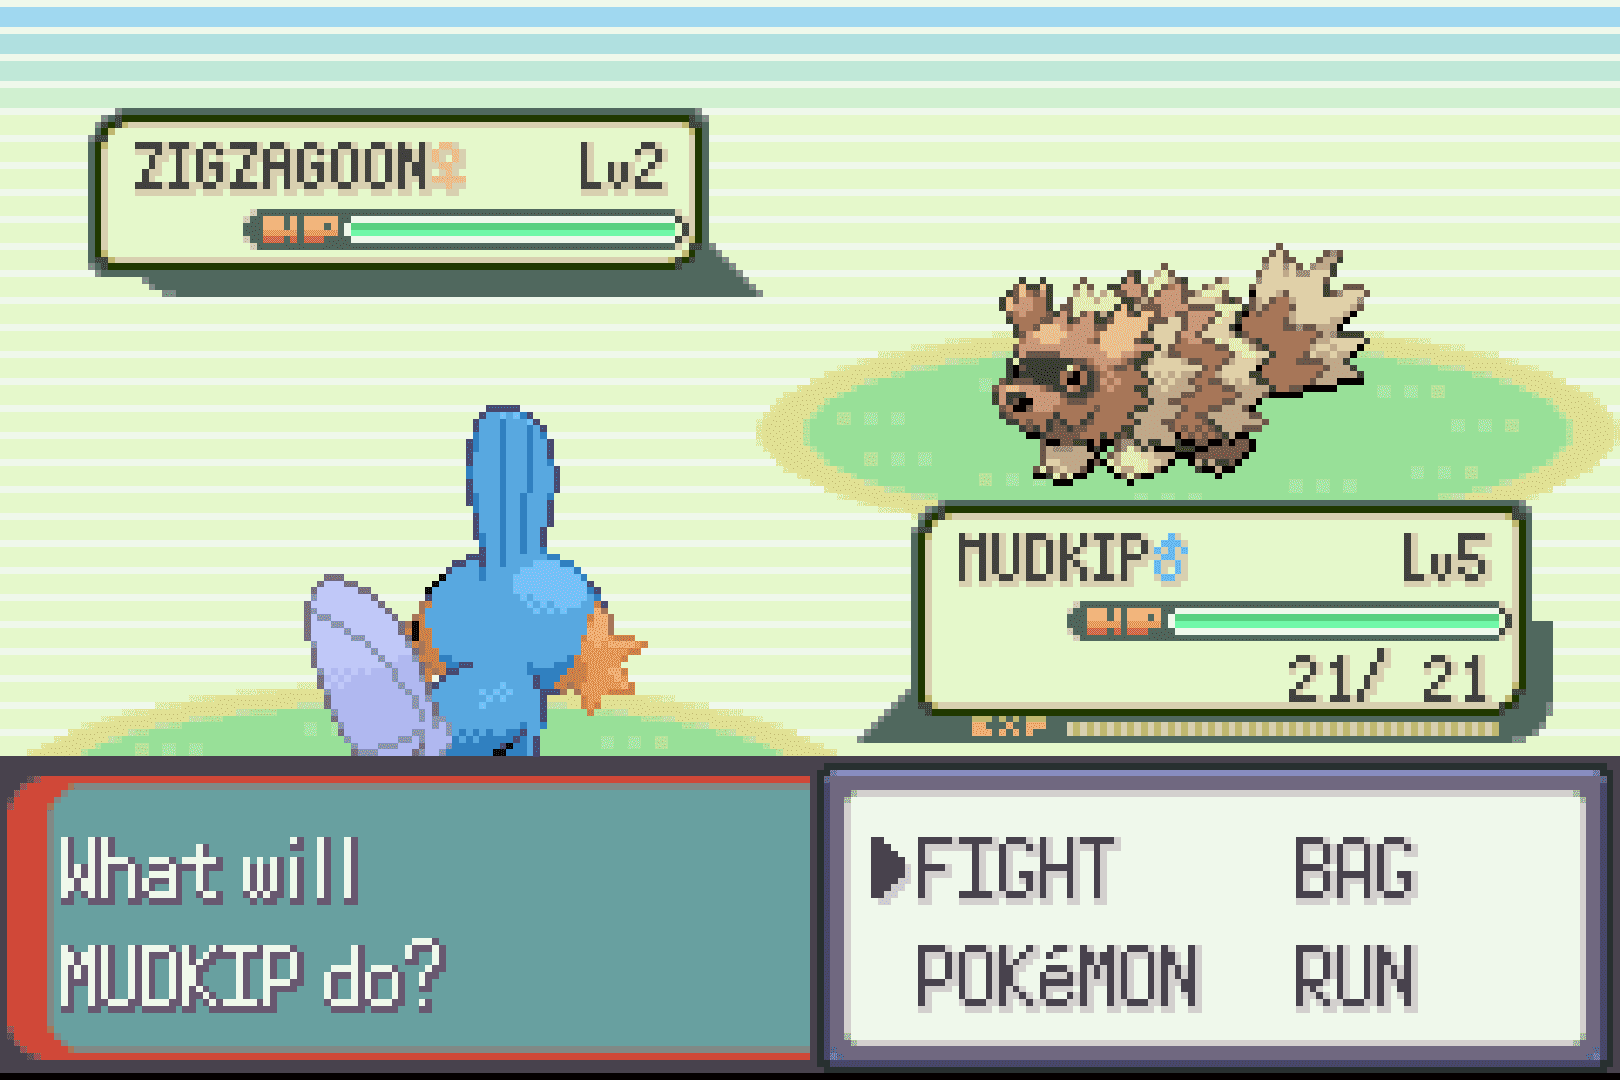 001 pokemon emerald cheats codes and hacks subtitle take your adventure to a new level with these tips and tricks 4588515 5c882338c9e77c0001f2ad3a 2d442010afaa420795d13f58fdf777c6